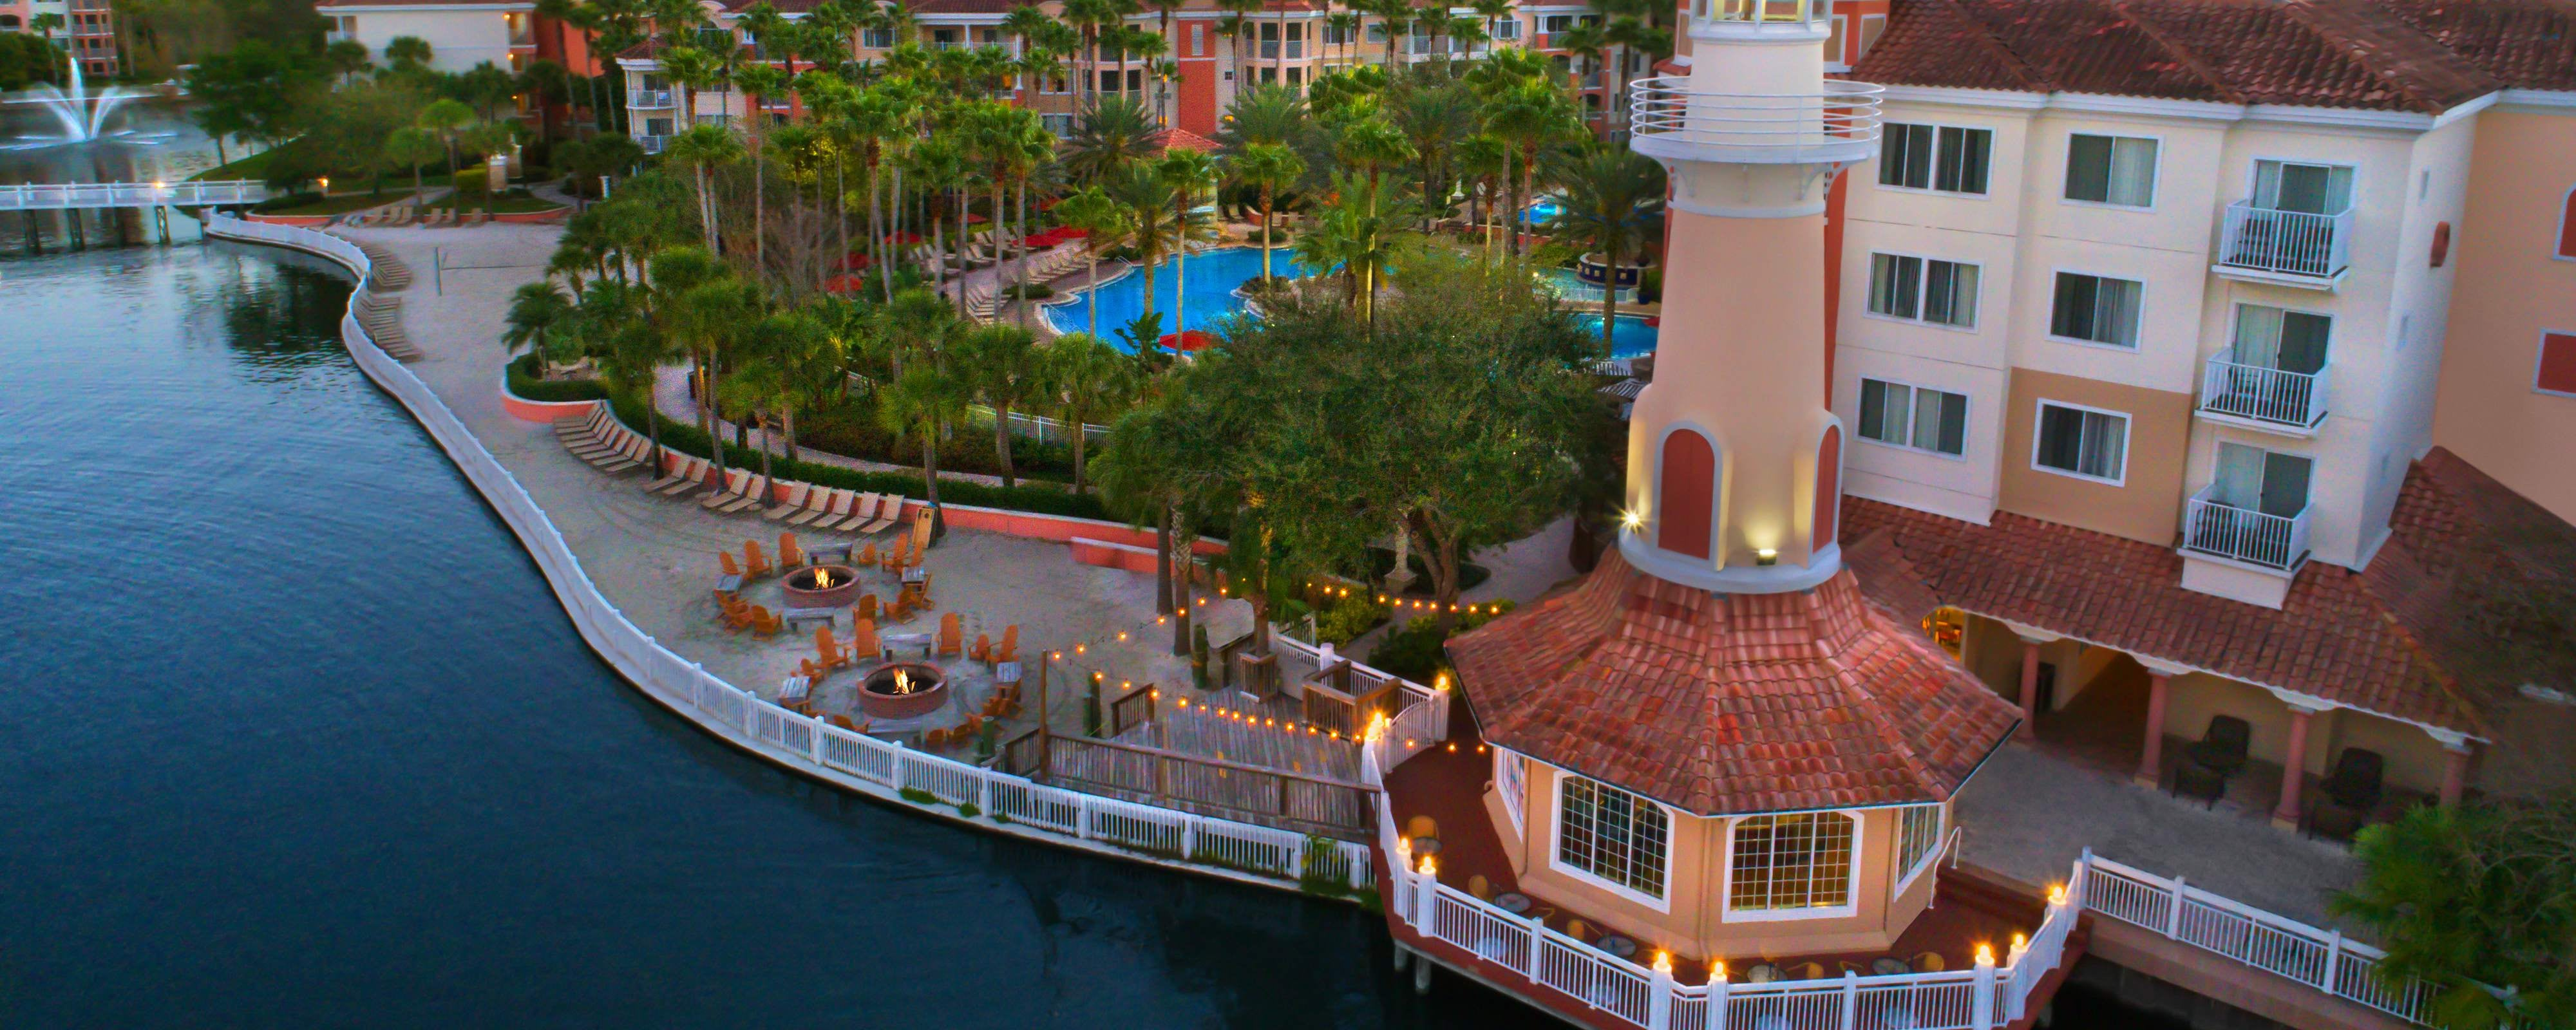 2 and 3 bedroom villas in orlando florida marriott 39 s - 3 bedroom resorts in orlando florida ...